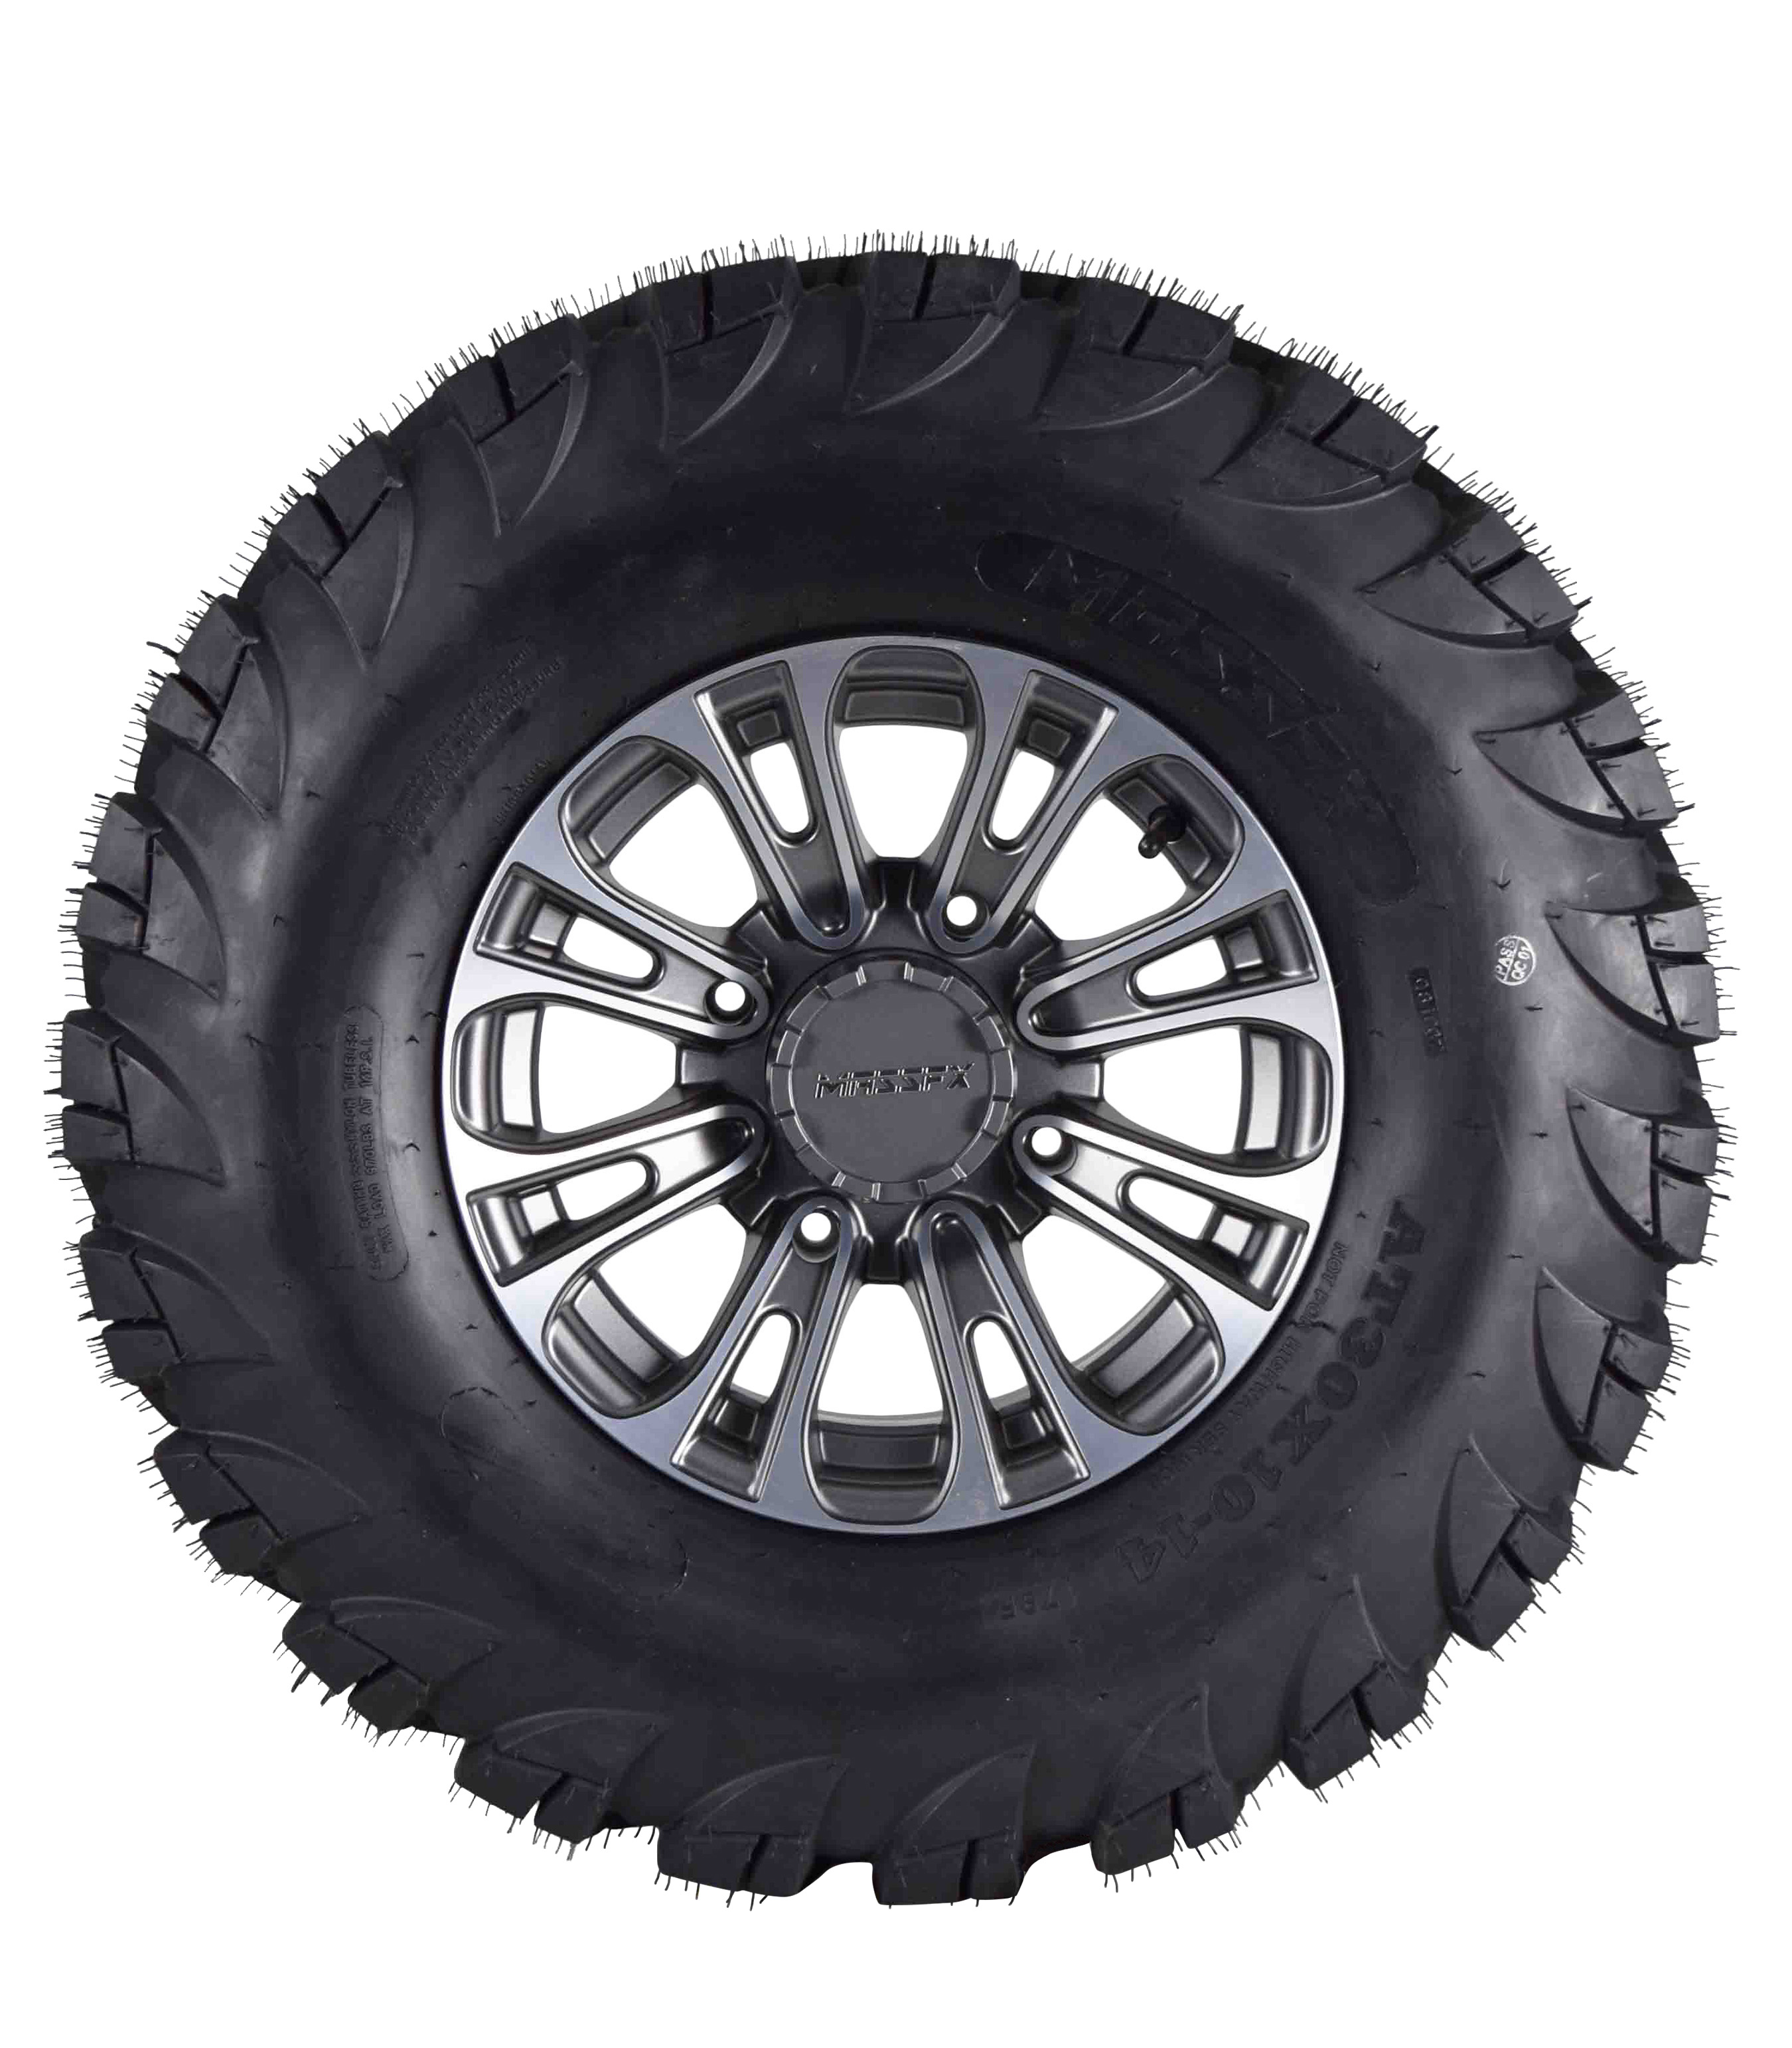 MASSFX-VY-30x10-14-Tire-w-Gunmetal-14x7-4-156-Rims-Wheel-Tire-Kit-with-Spare-image-3